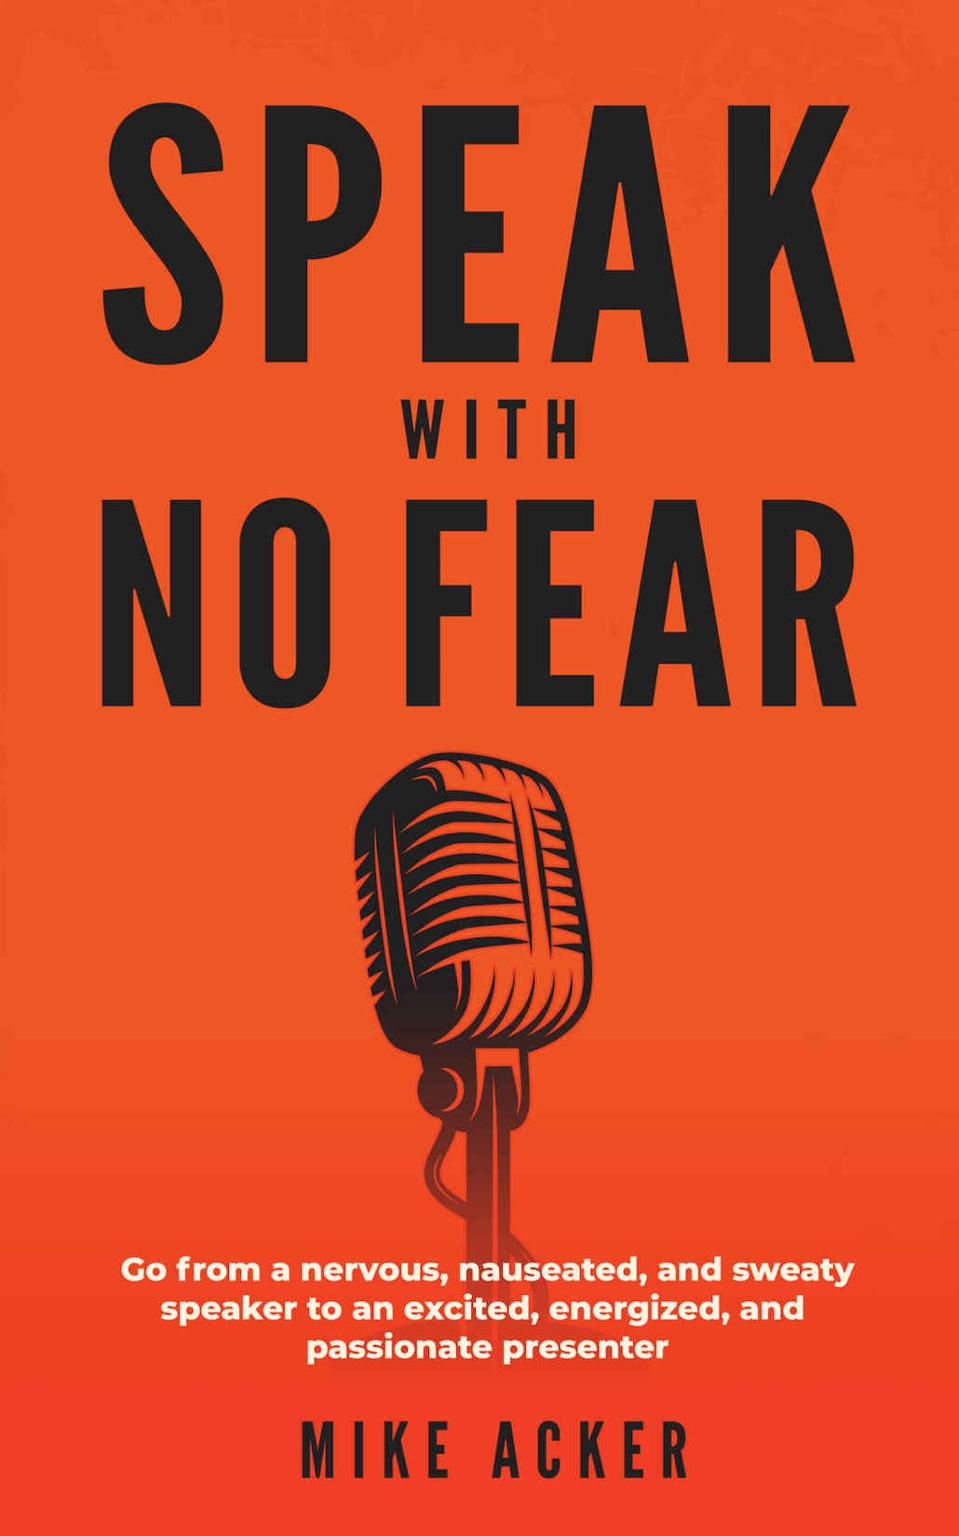 Speak With No Fear: Go From a Nervous, Nauseated, and Sweaty Speaker to an Excited, Energized, and Passionate Presenter by Mike Acker